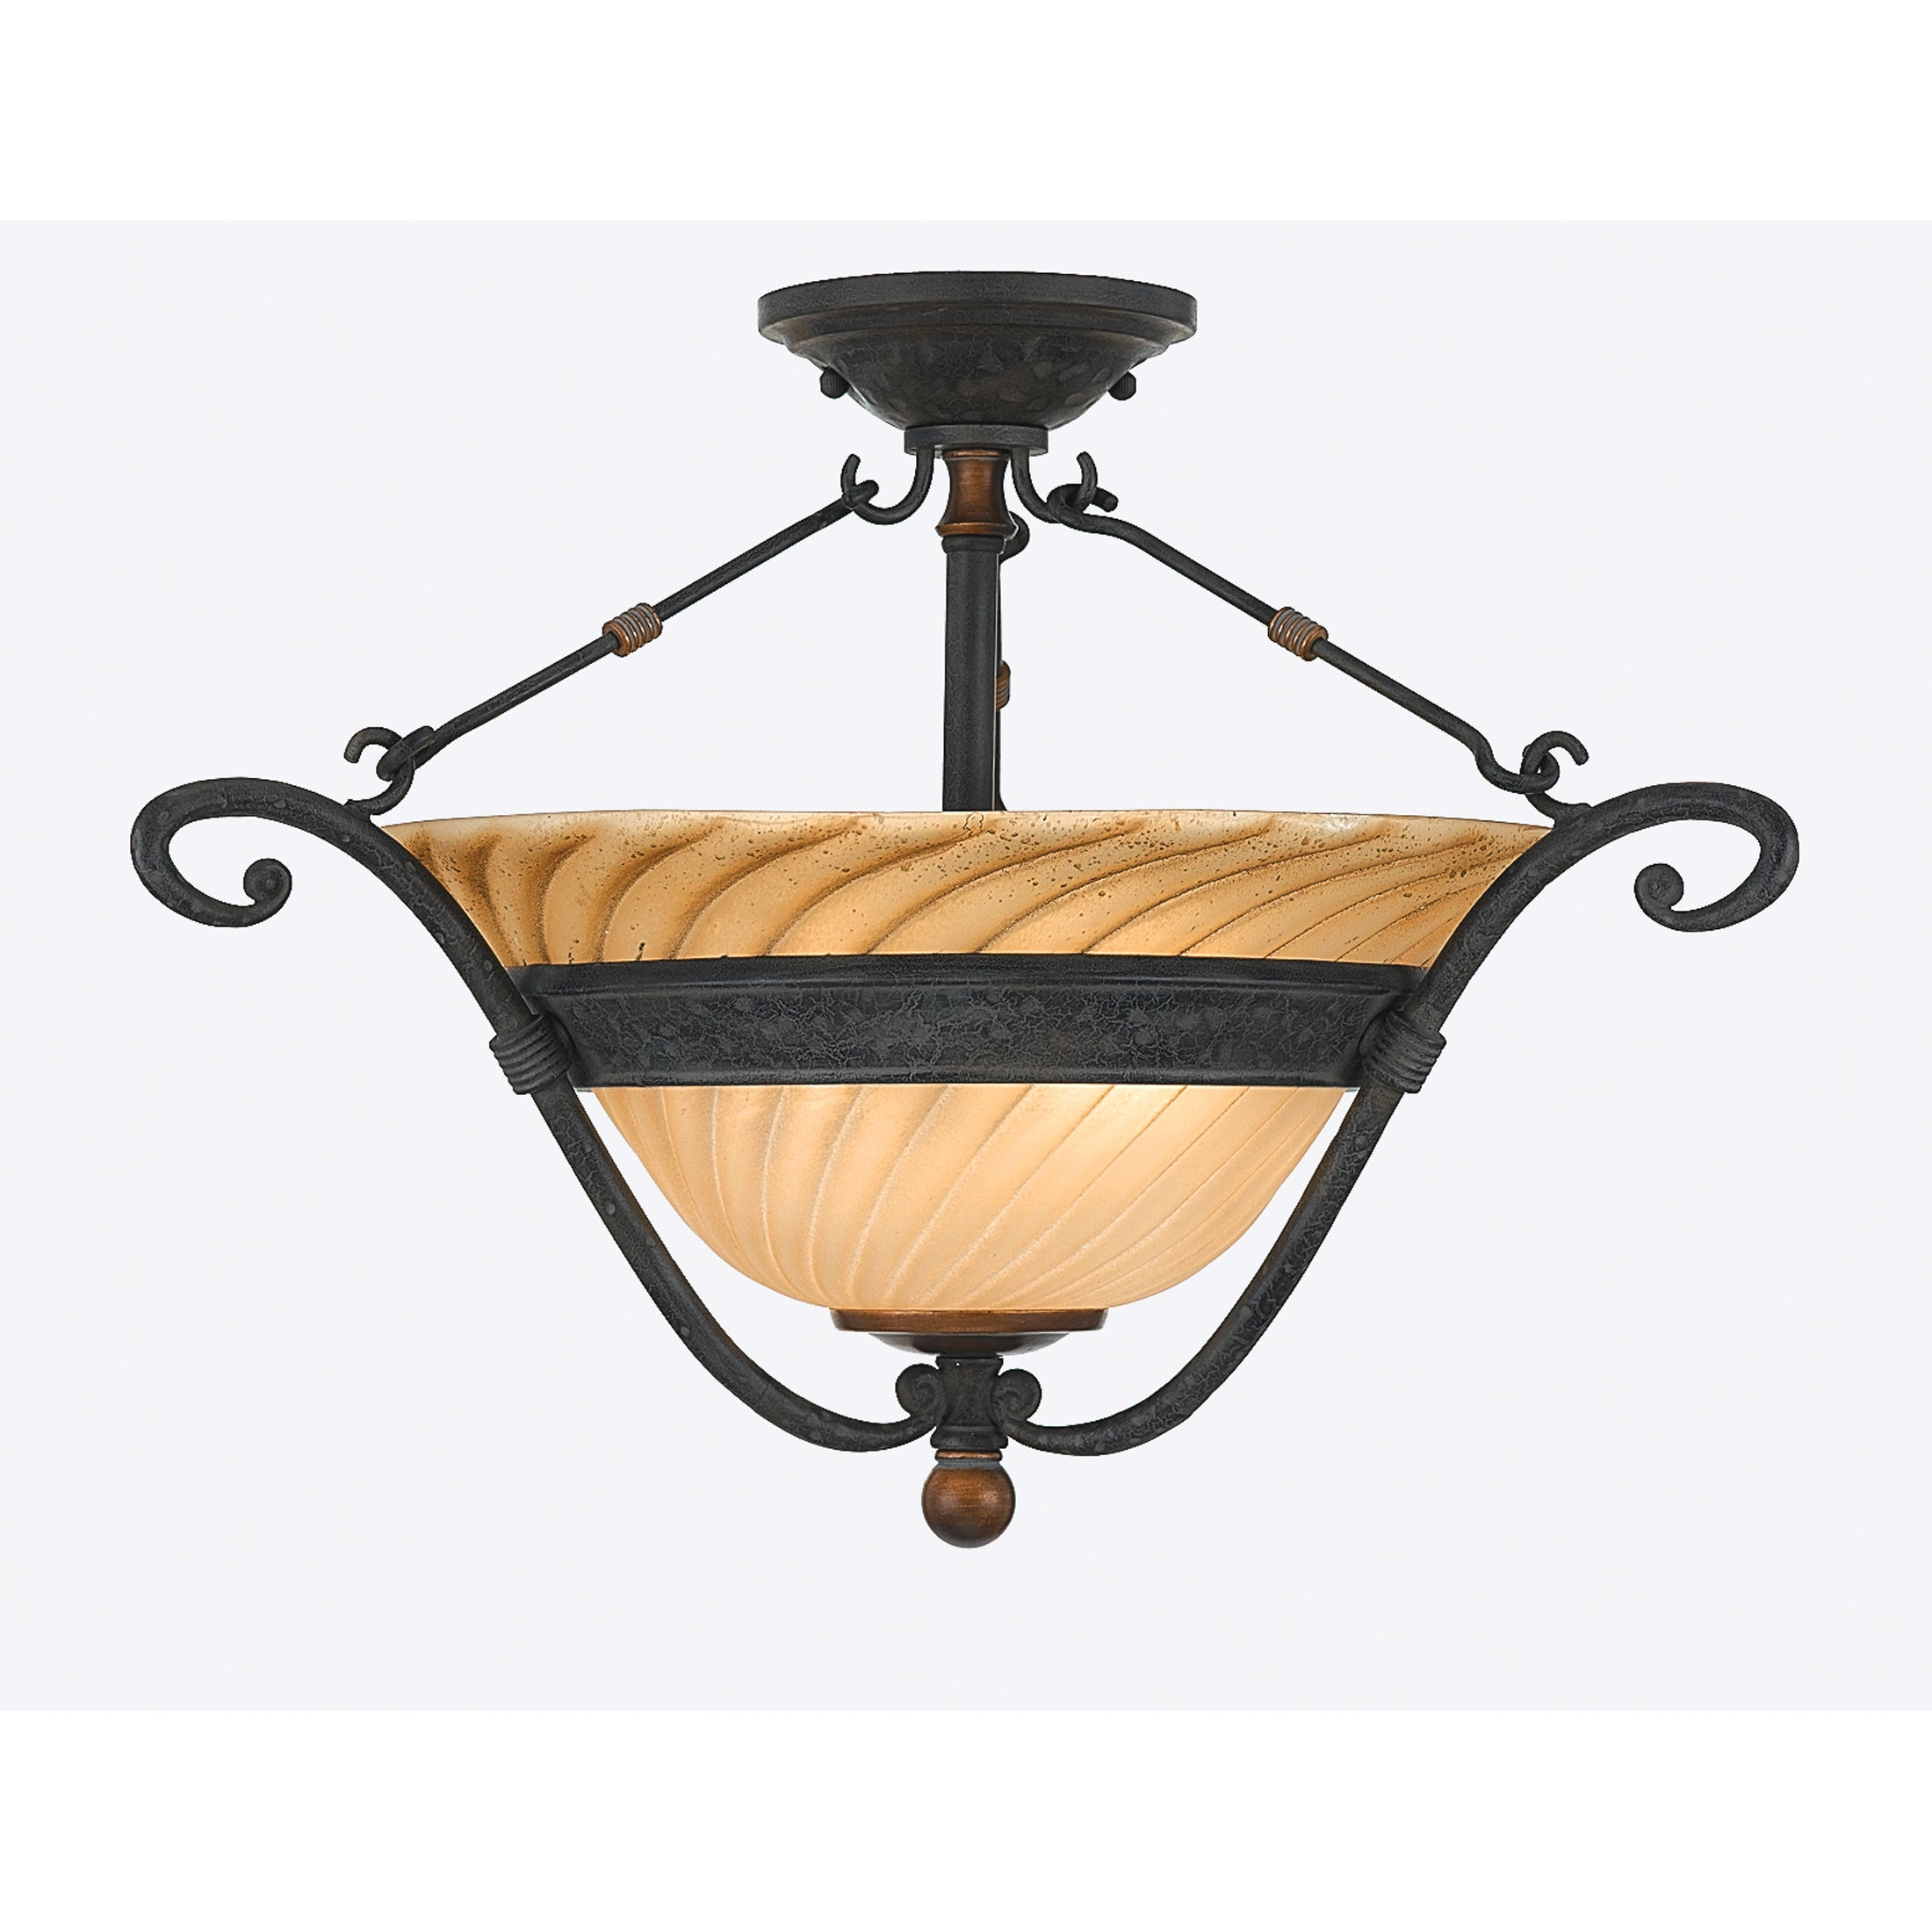 Quoizel 'Genova' Semi-flush Mount